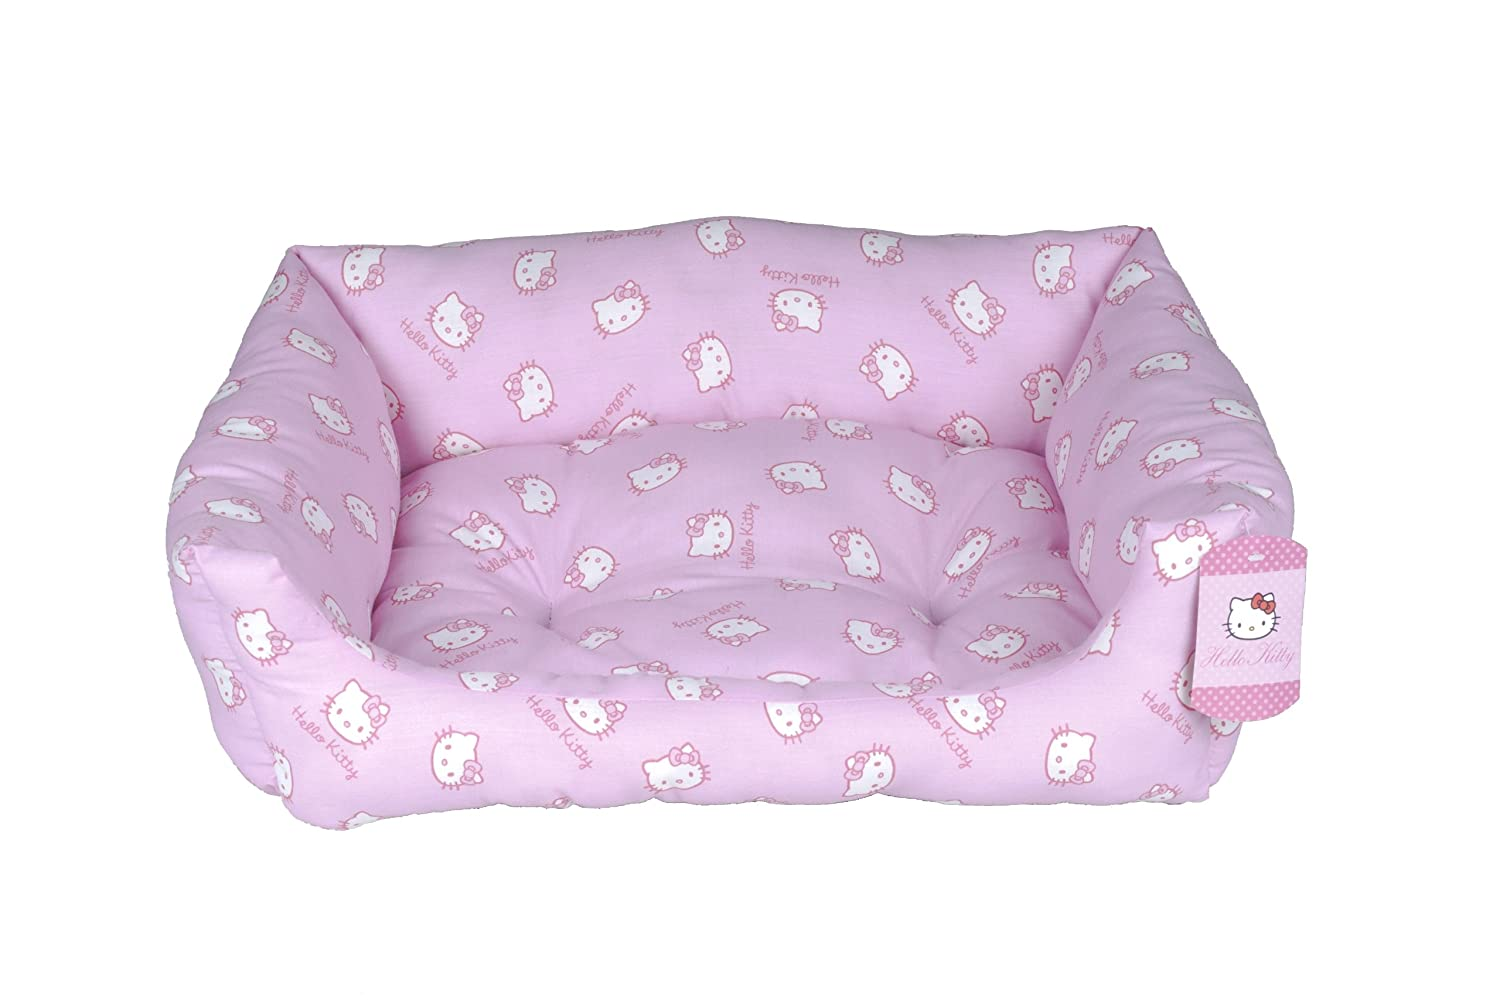 P3Sync Hello Kitty Pink Faces Domino Pet Bed [Misc.] at Sears.com